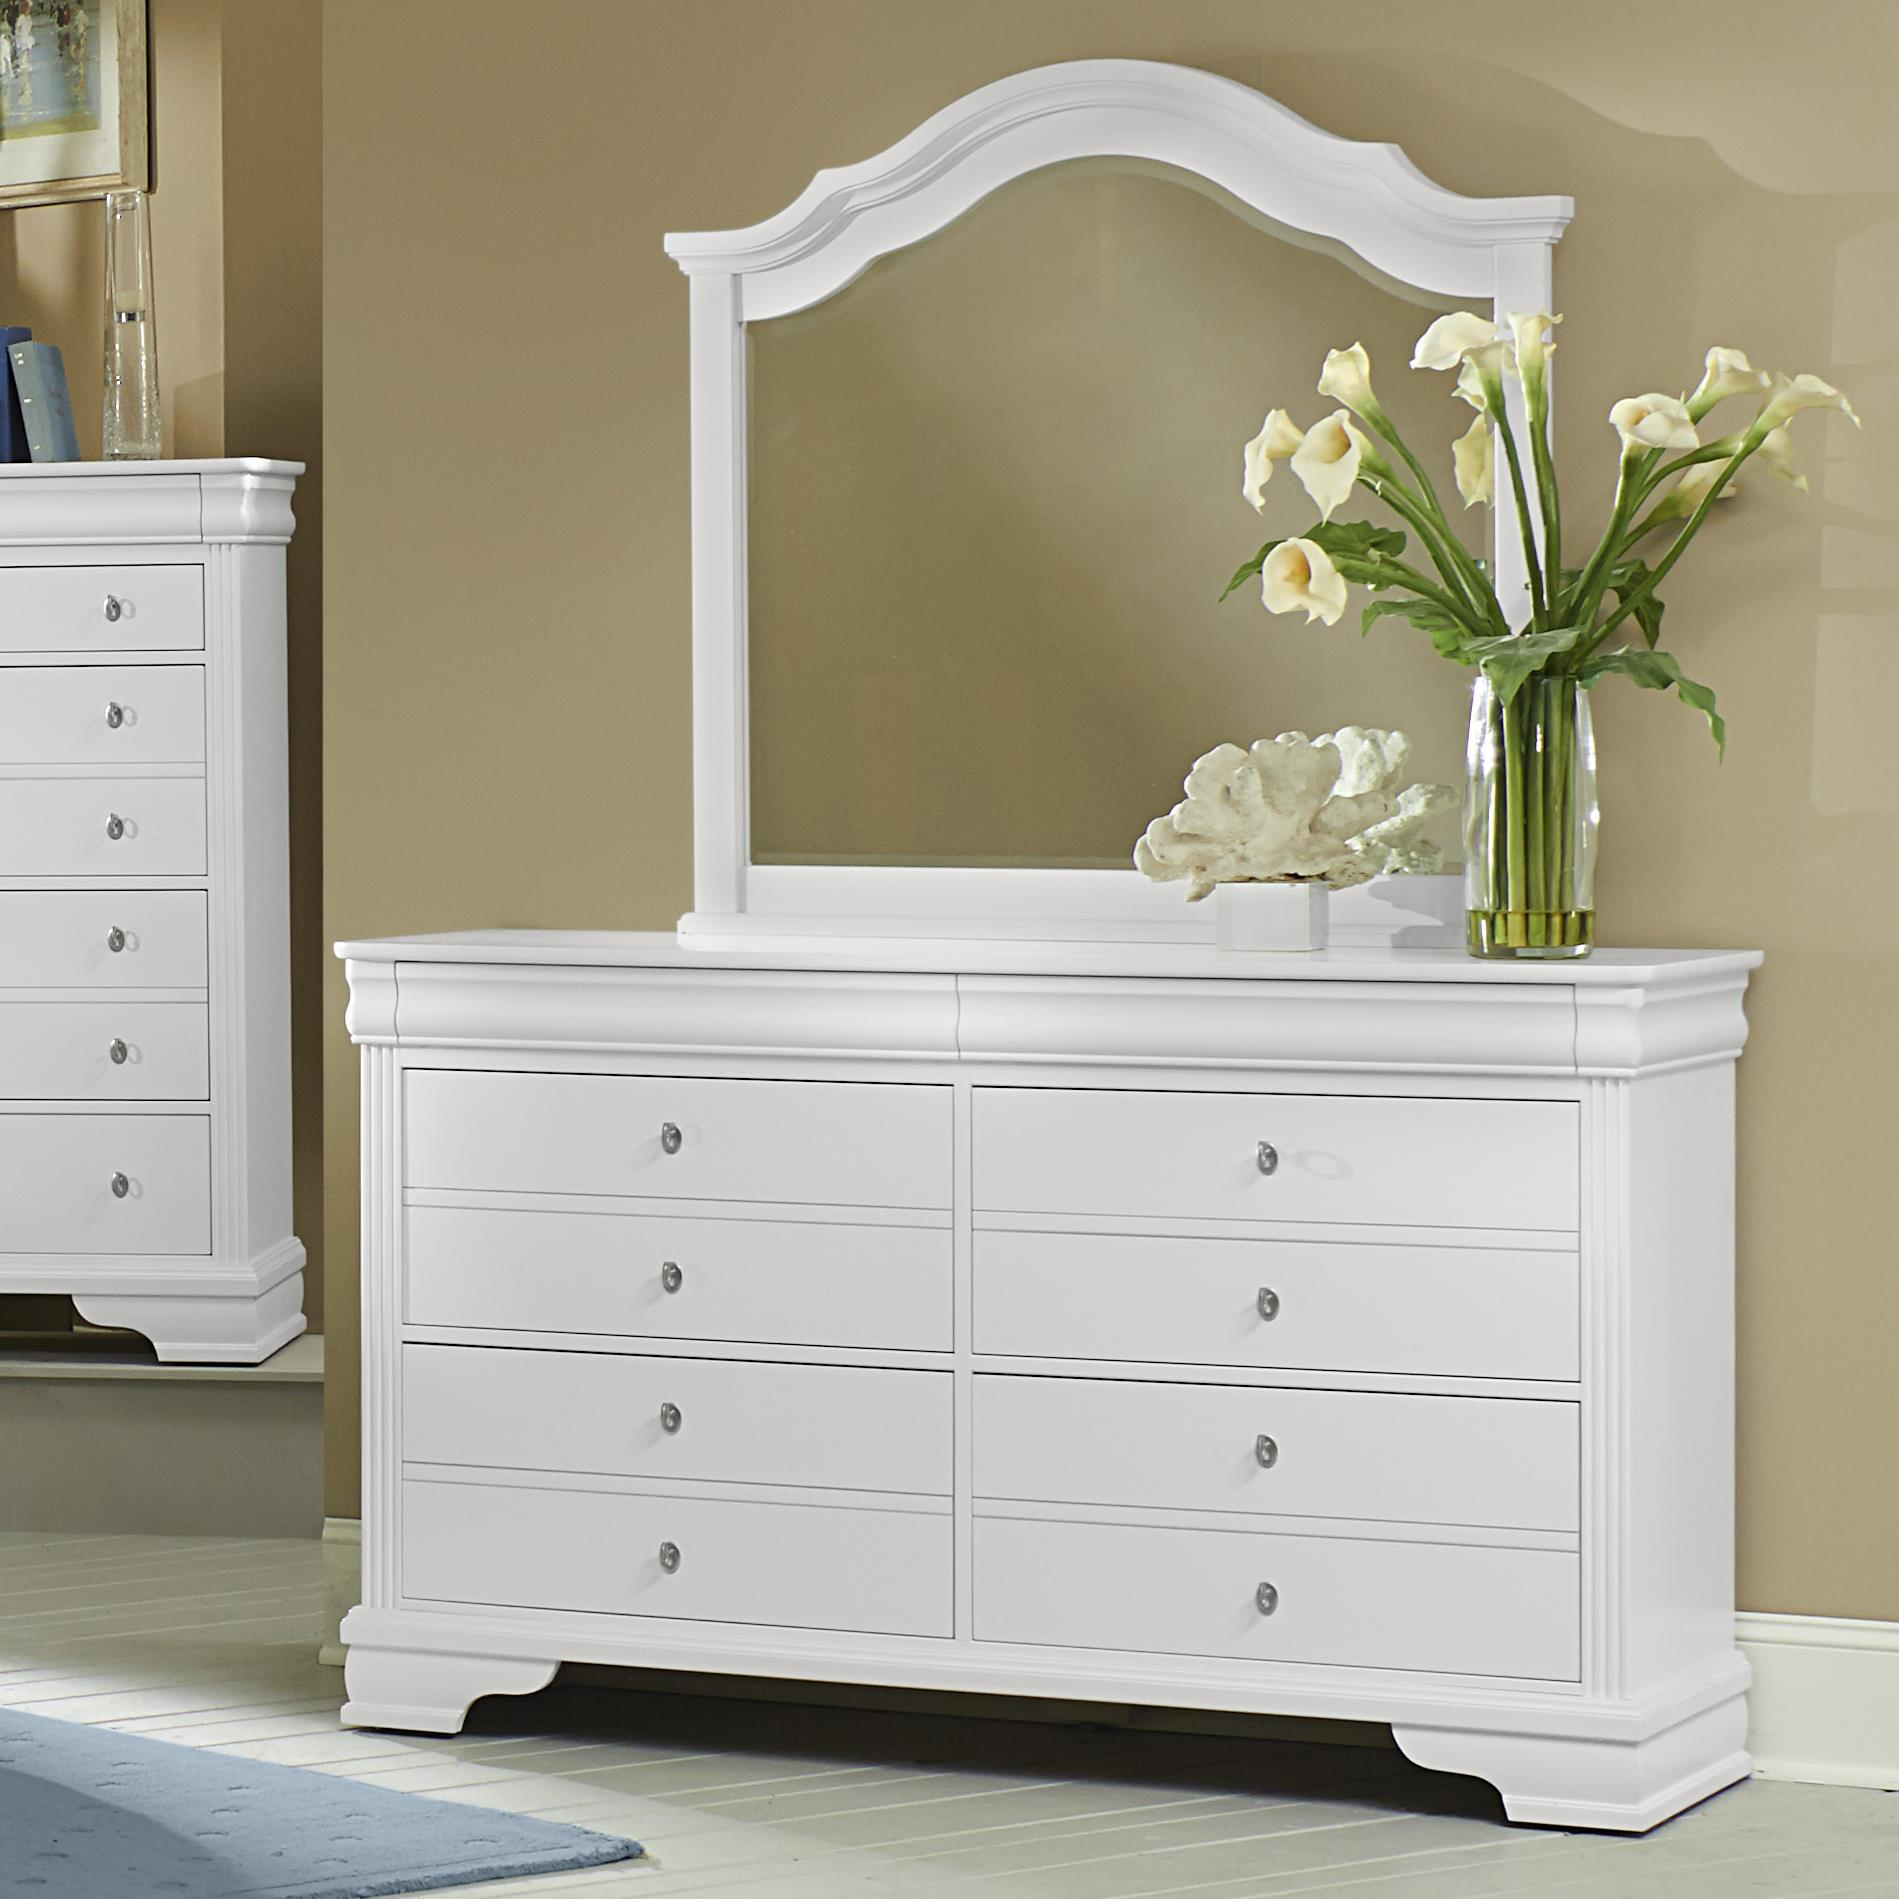 Vaughan Bassett French Market Dresser & Arched Mirror - Item Number: 384-002+447